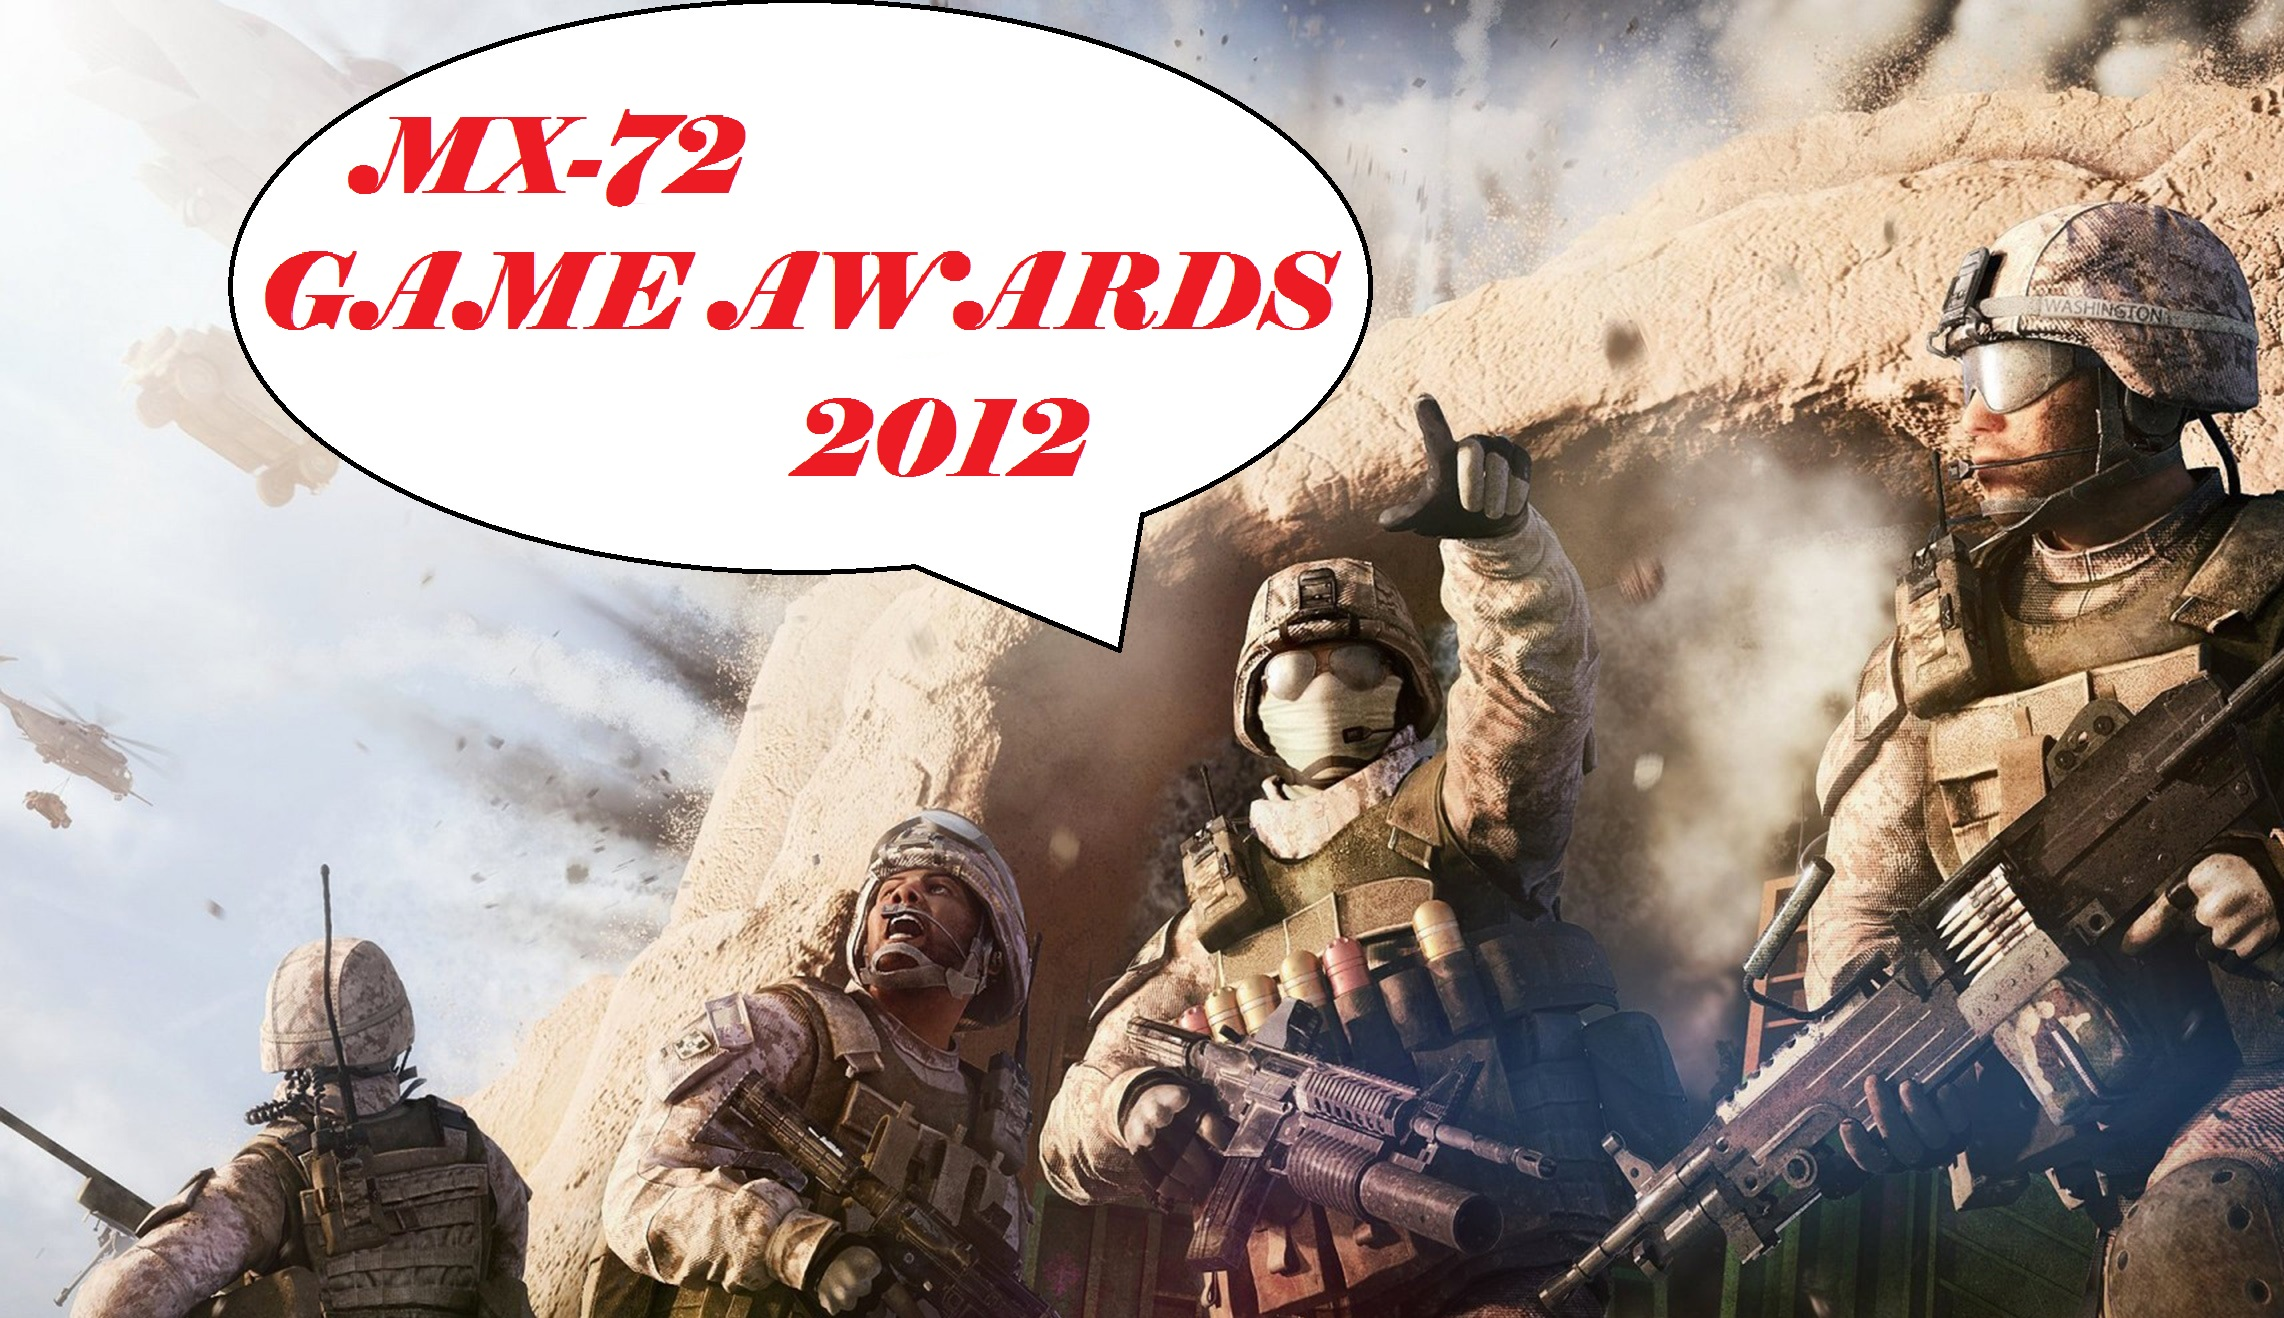 MX-72 Game Awards 2012